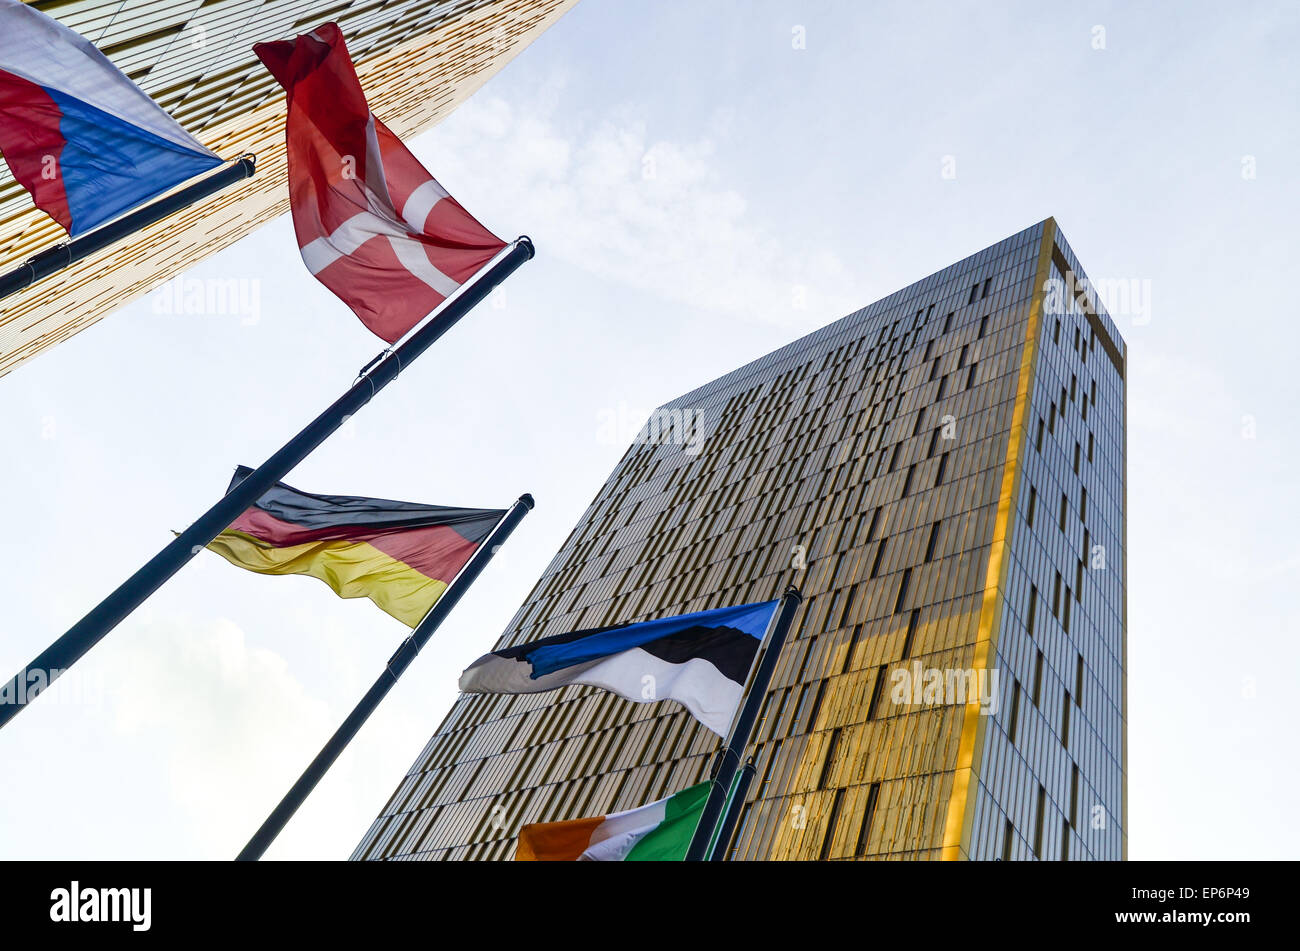 Golden twin towers of the Court of Justice of the European Union, in European Quarter, Kirchberg, Luxembourg, with Stock Photo